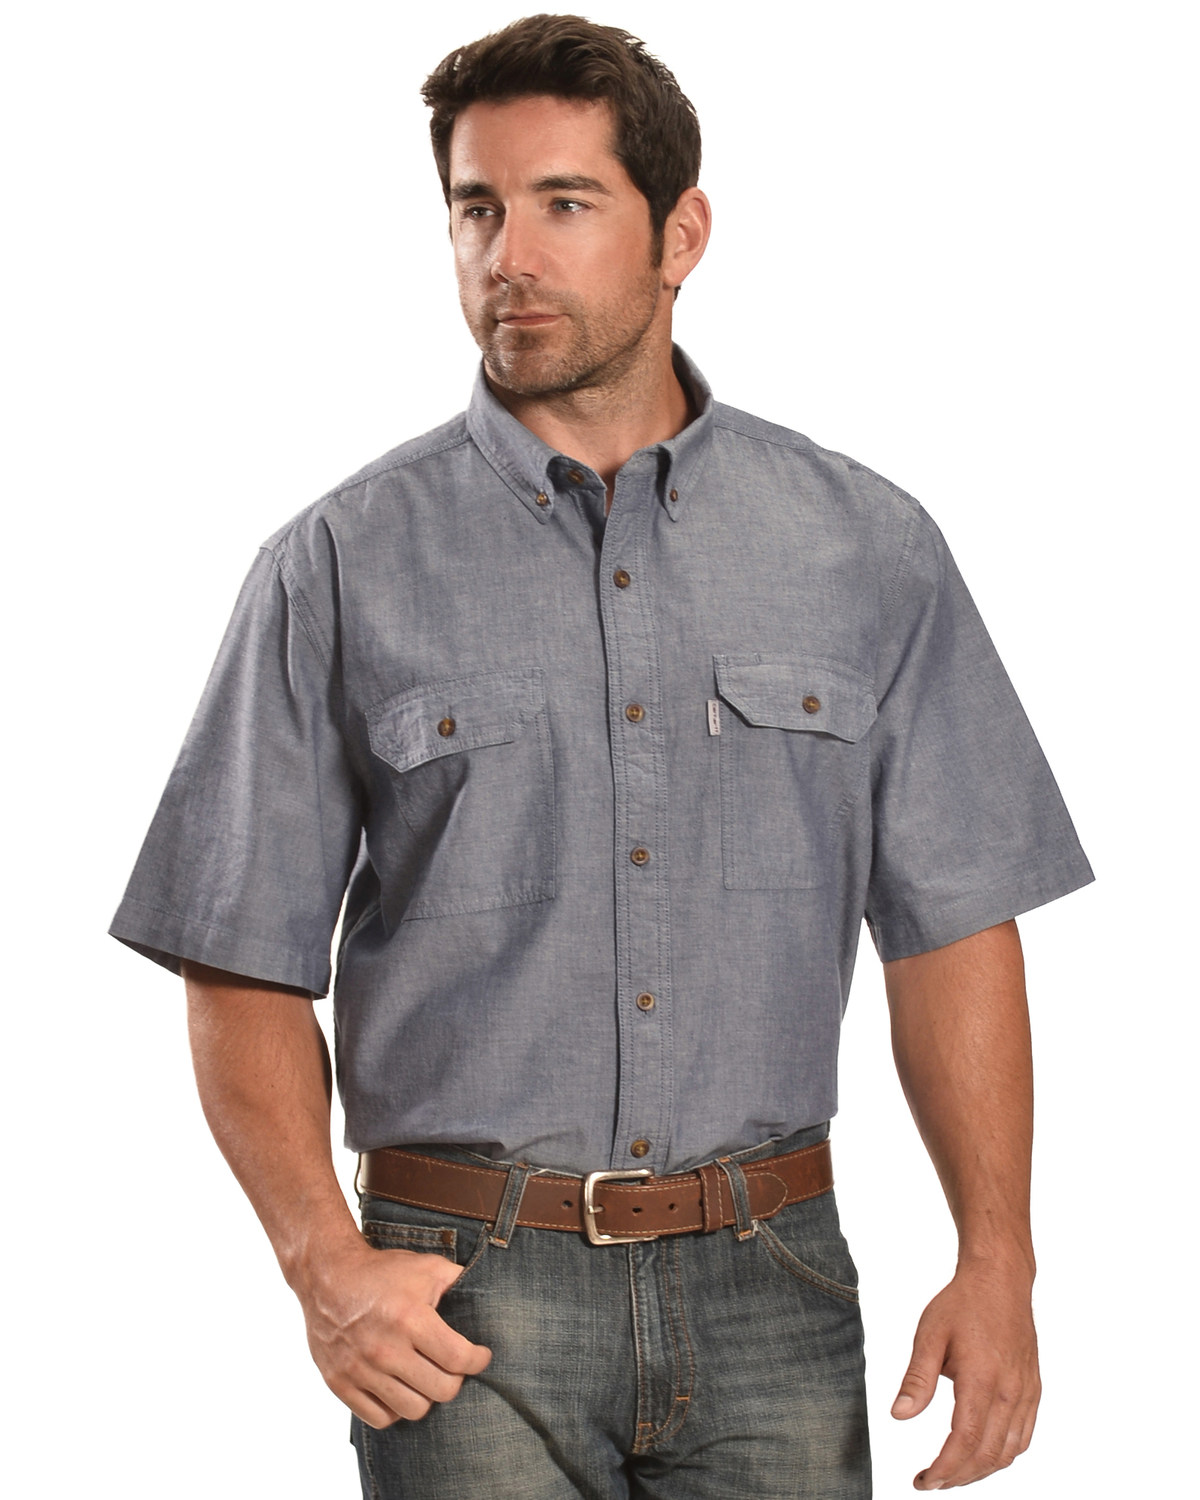 IZOD Mens Chambray Tartan Plaid Short Sleeve Shirt. Sold by Bealls Florida. $ $ Ralph Lauren Mens Chambray Flag Print Button-Down Shirt. Sold by BHFO. $ $ IZOD Mens Chambray Tartan Plaid Print Short Sleeve Shirt. Sold by Bealls Florida. $ $